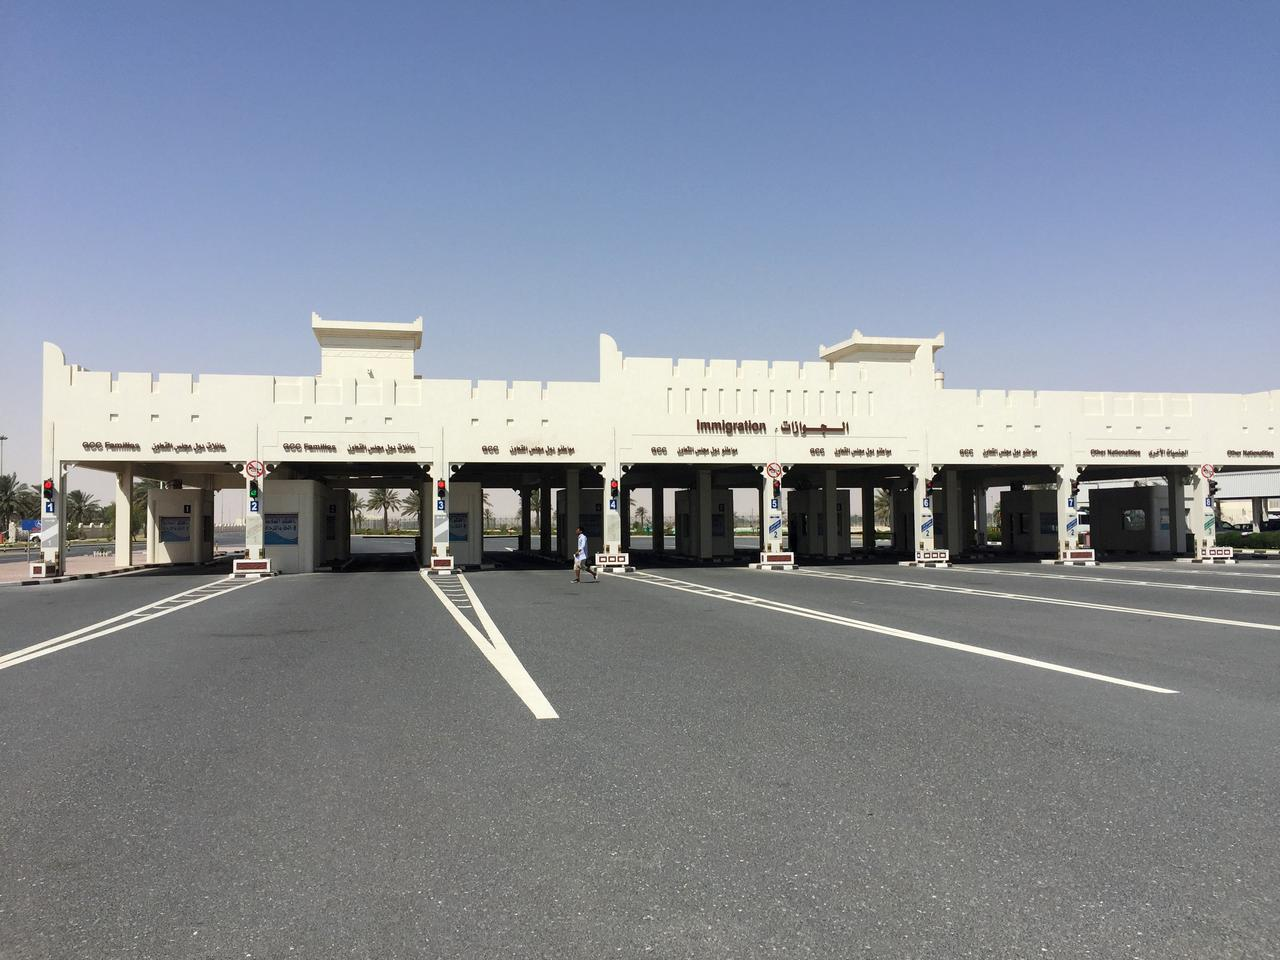 Qatar-Saudi land border deserted after frontier shut - Reuters